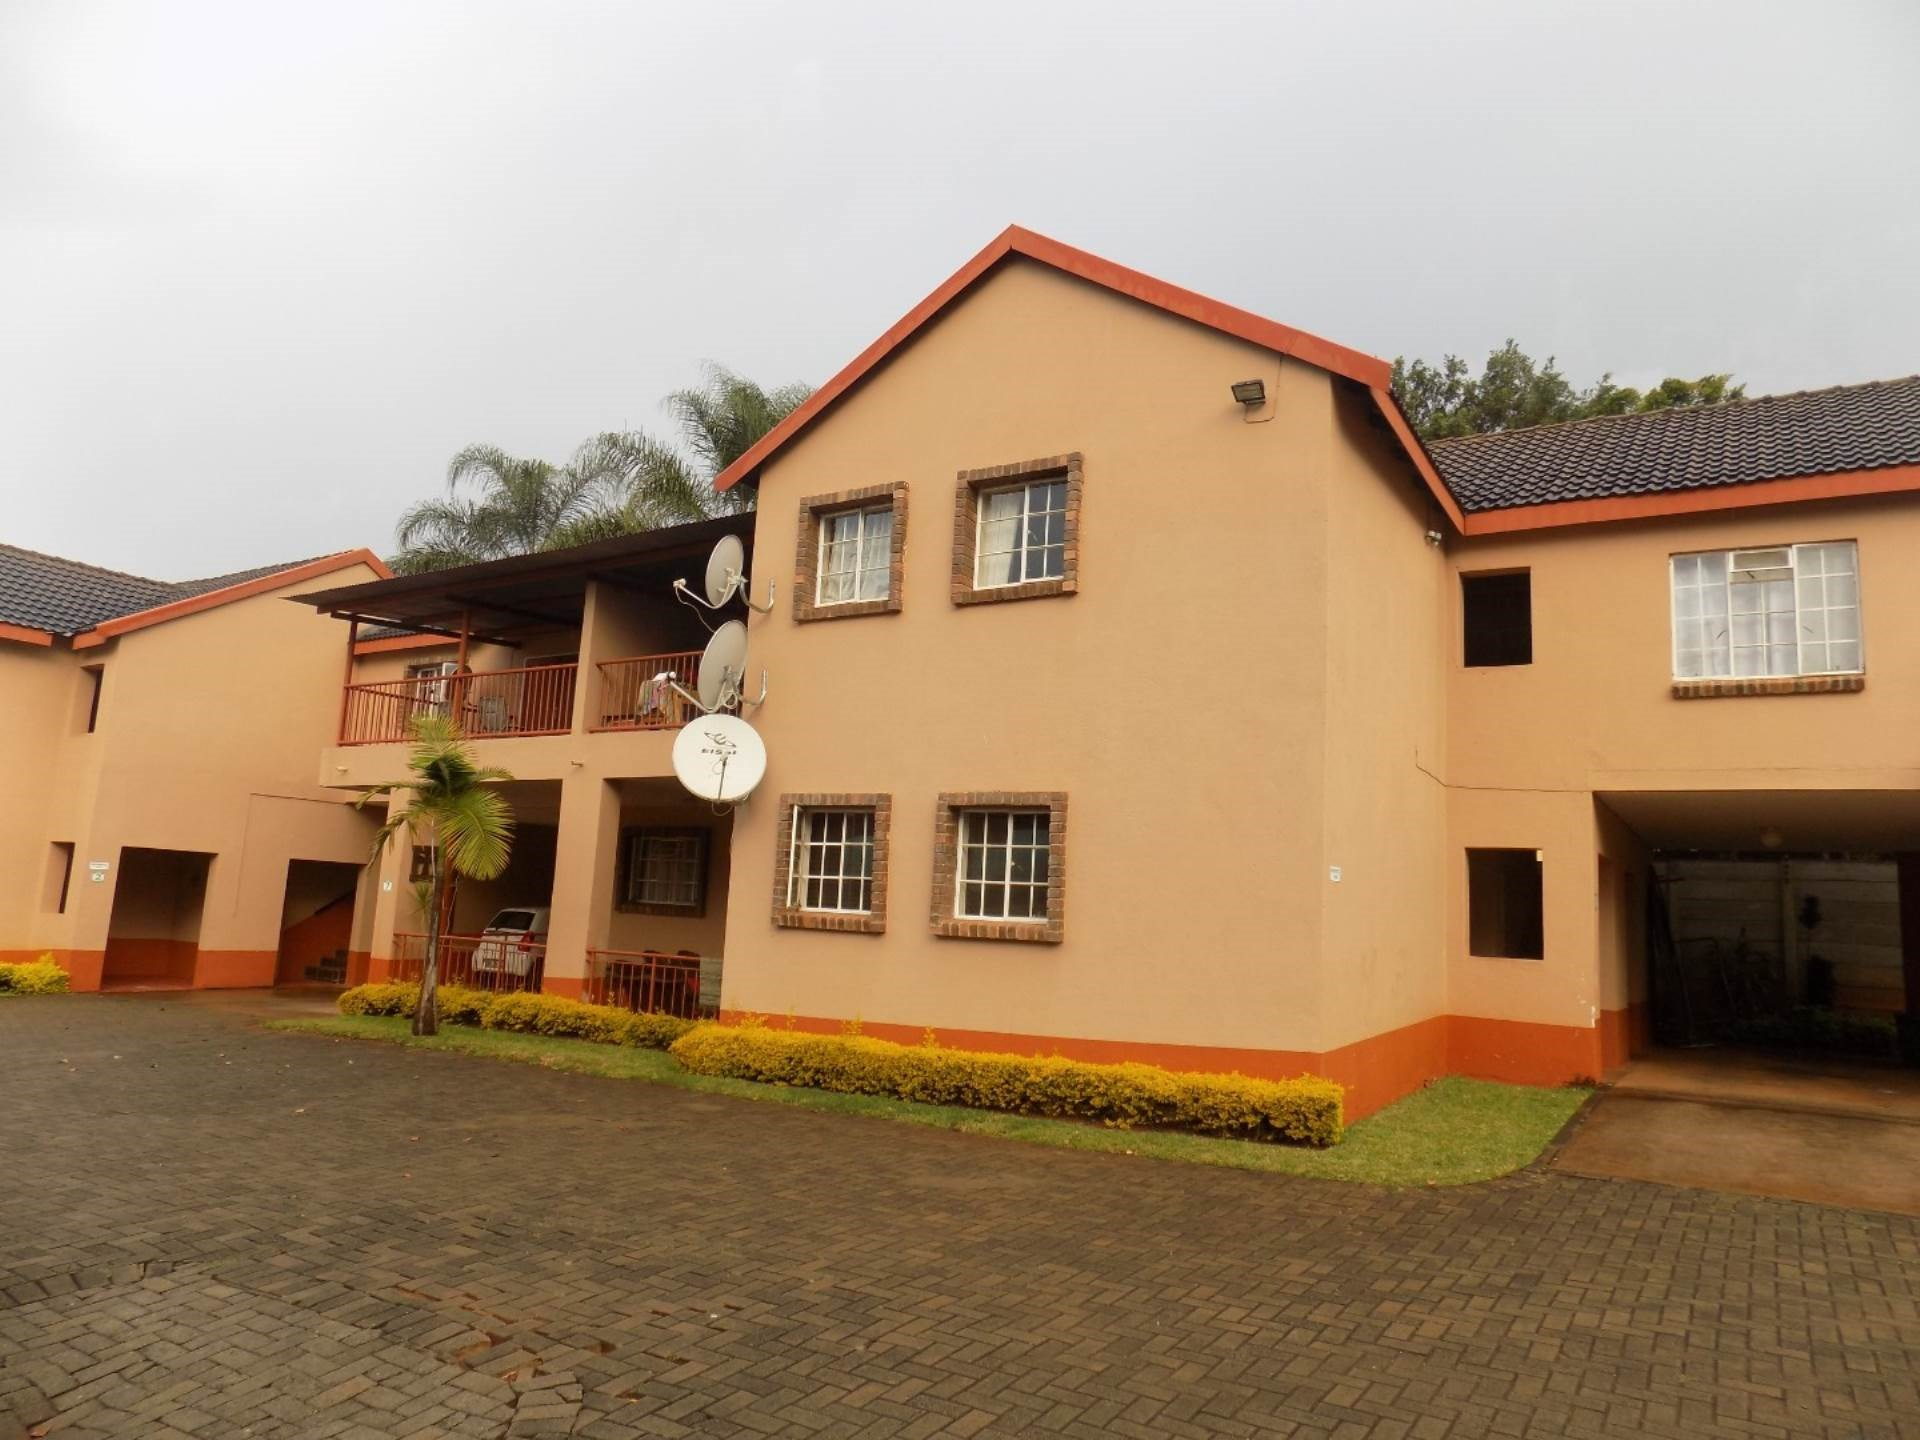 2 Bedroom Townhouse for Sale in Aquapark